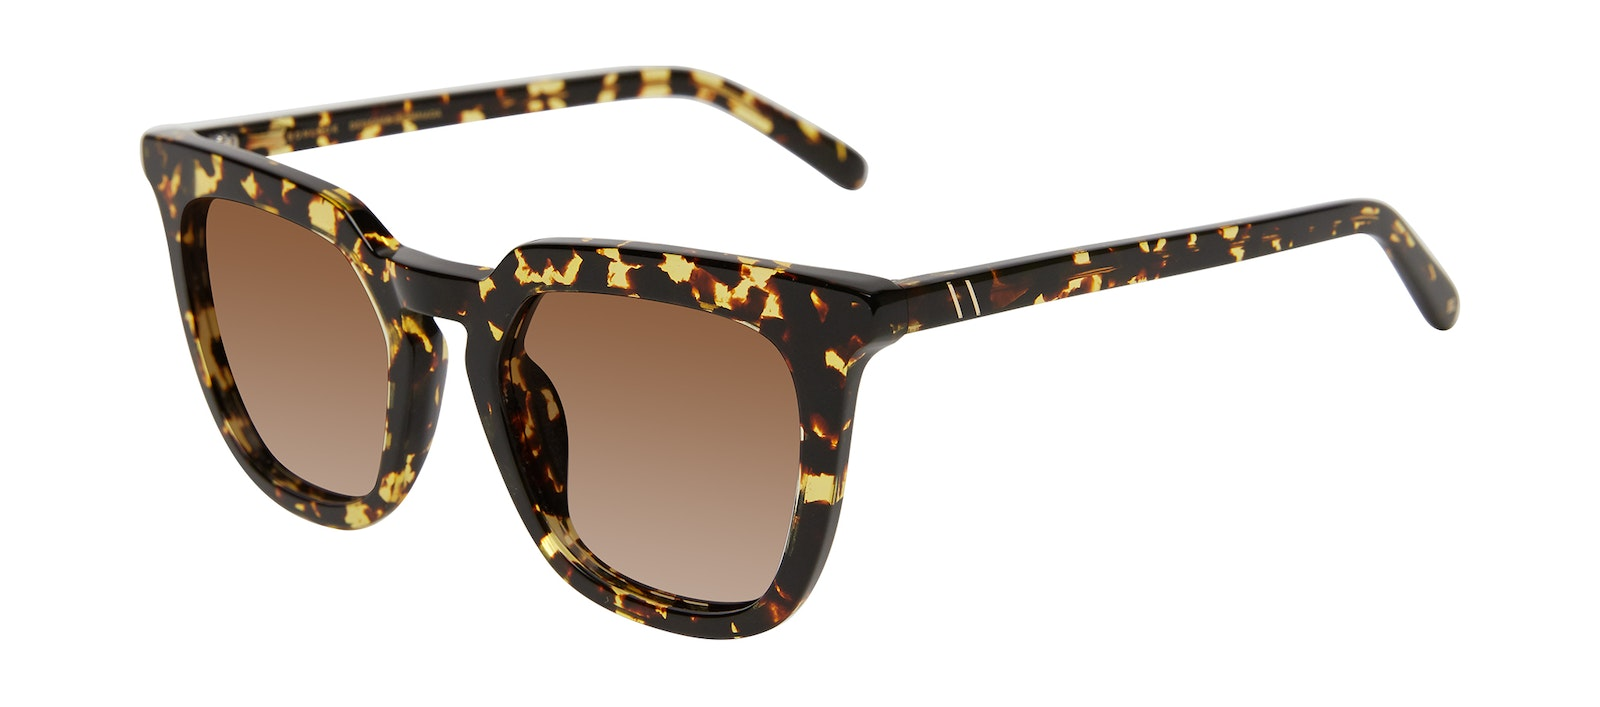 Affordable Fashion Glasses Square Sunglasses Women Hollywood Gold Flake Tilt